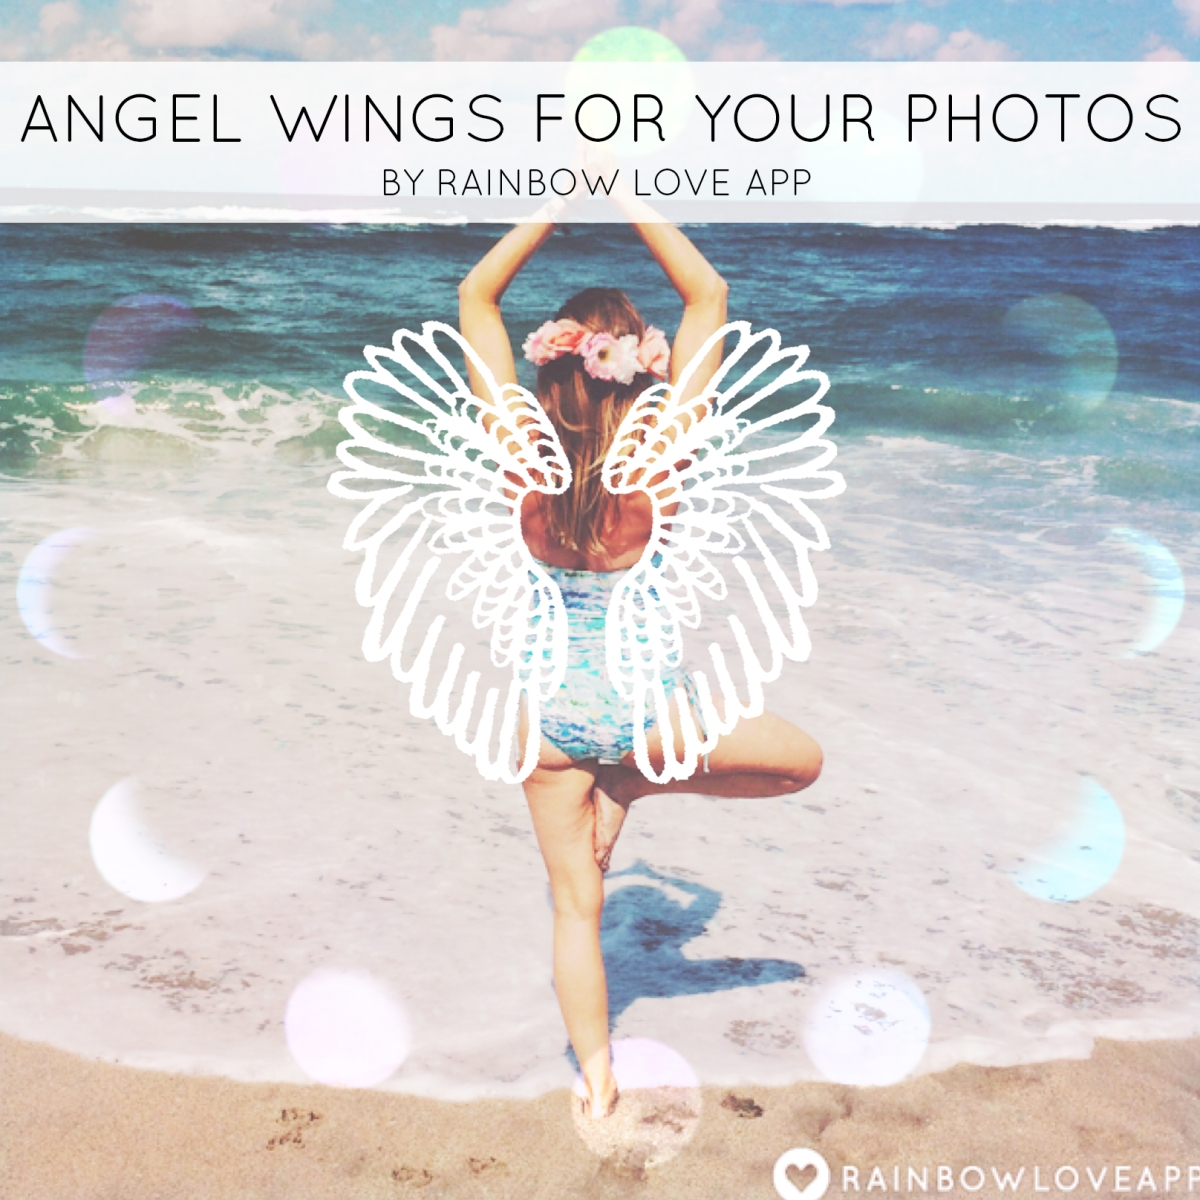 angel-wings-for-your-photos-angel-effect-photo-editor-rainbow-love-app-angels-wing-photo-editing-art-and-filters-best-rainbow-love-app-7